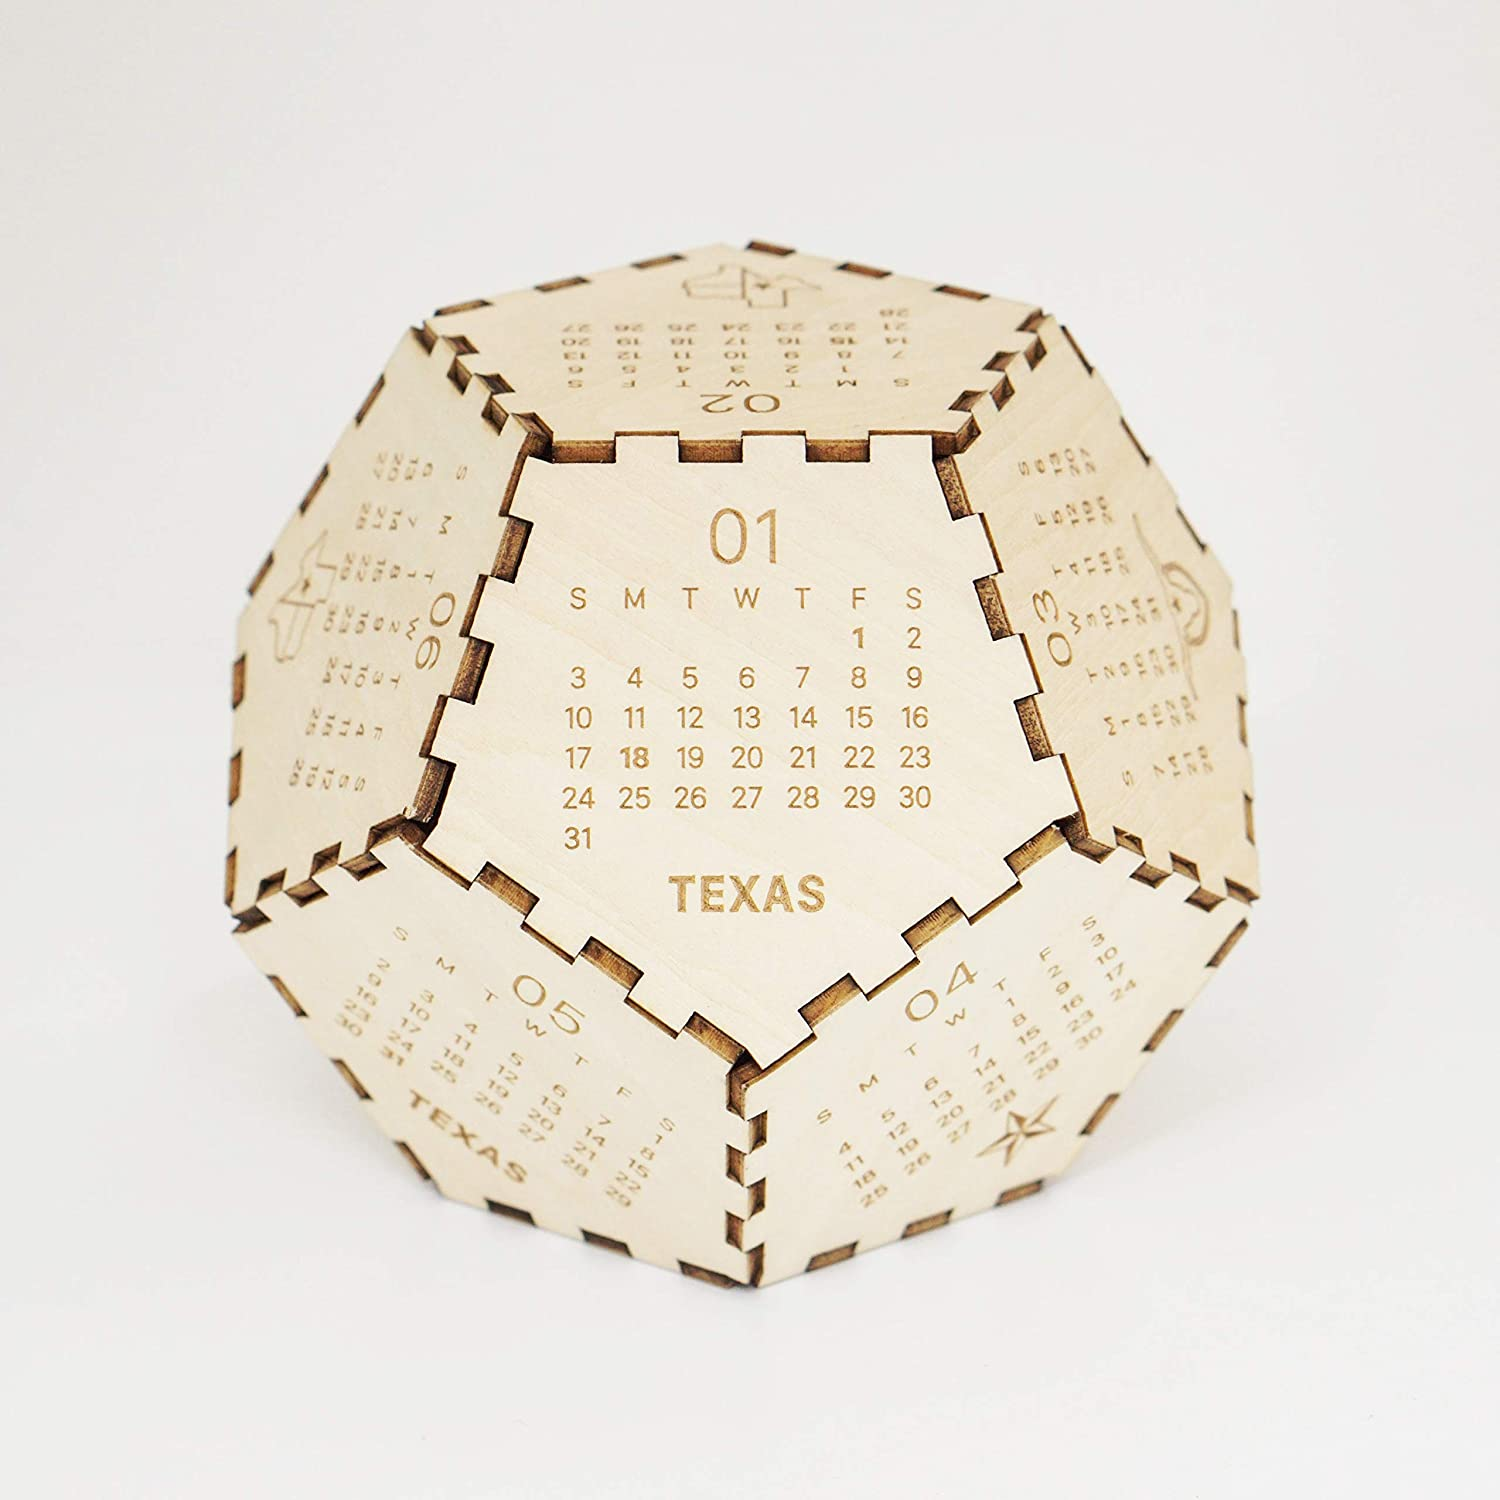 2021 Texas Puzzle Free shipping anywhere New item in the nation Calendar Wooden N For Year New